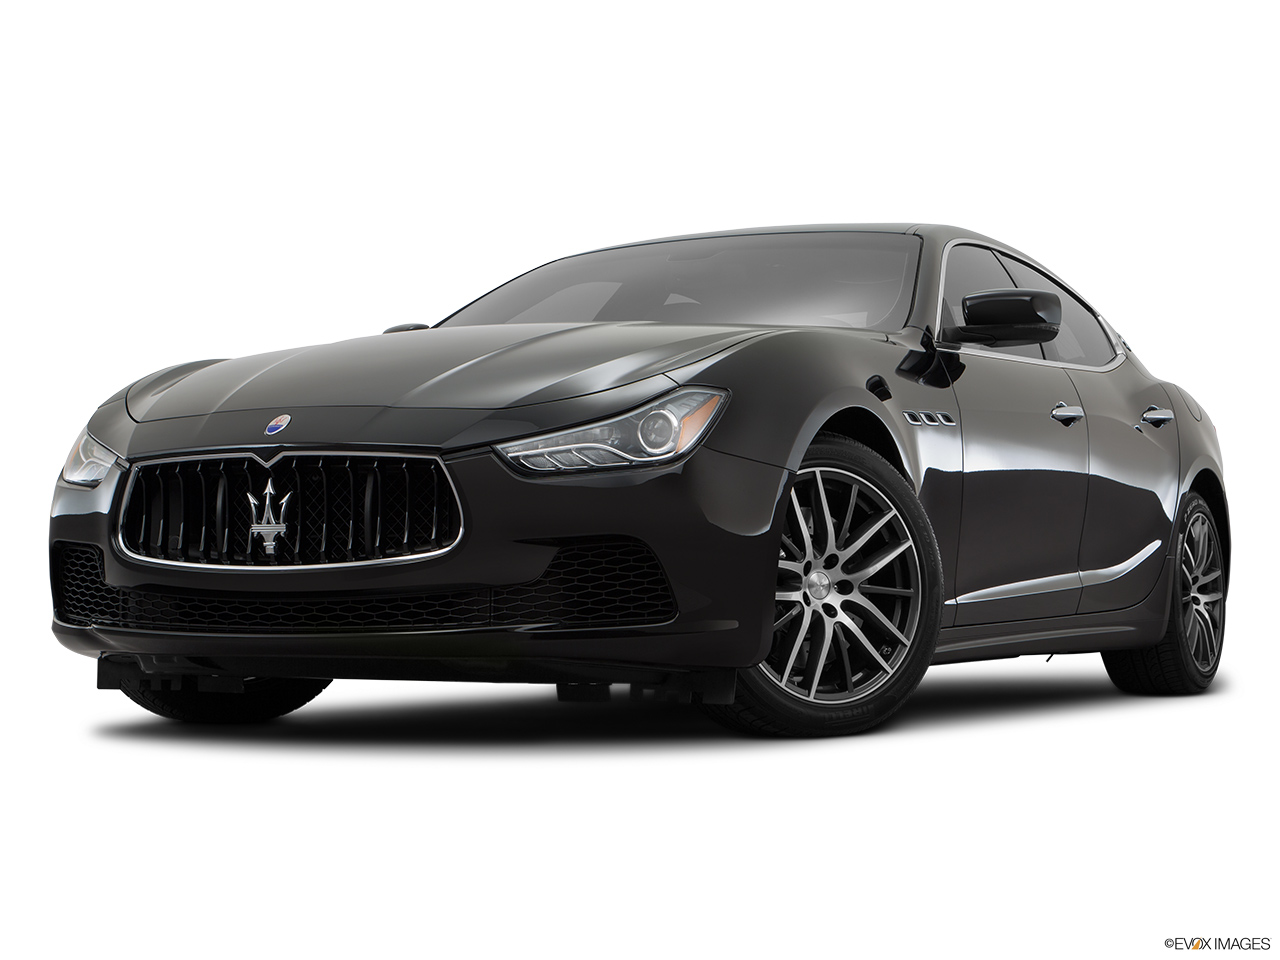 2015 Maserati Ghibli Base Front angle view, low wide perspective.